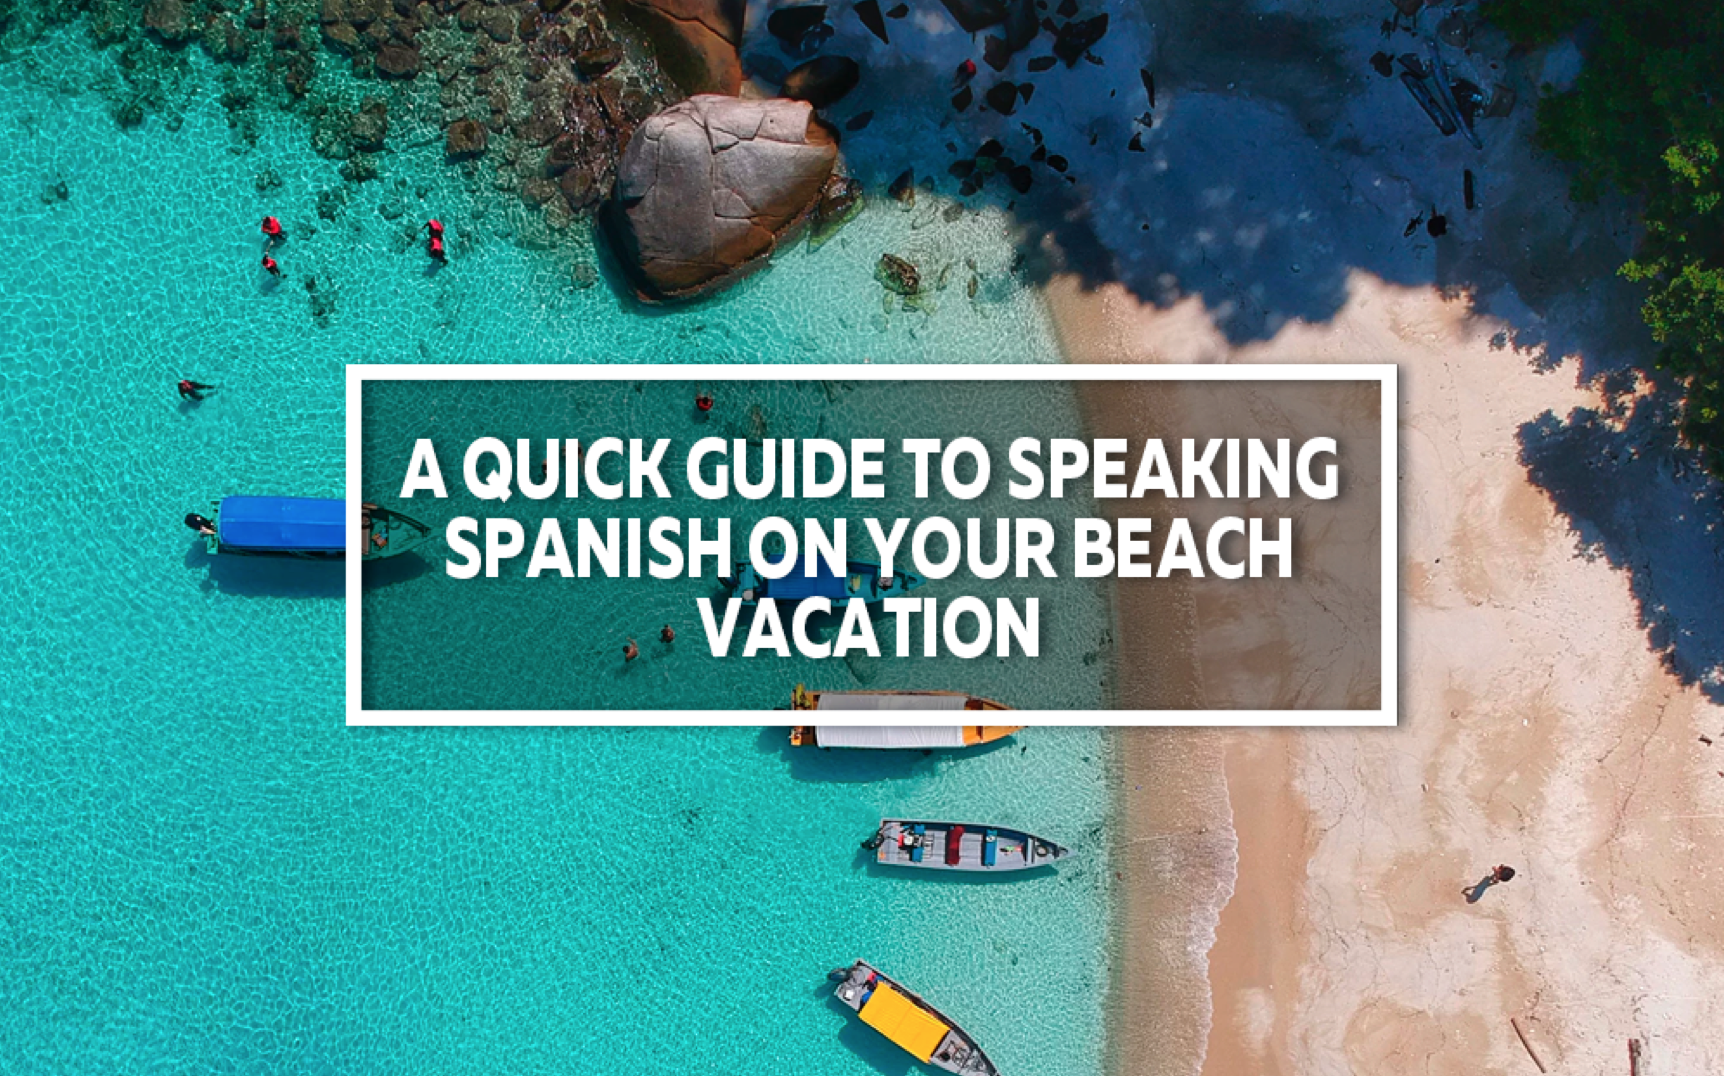 How to Speak Spanish on your Beach Vacation